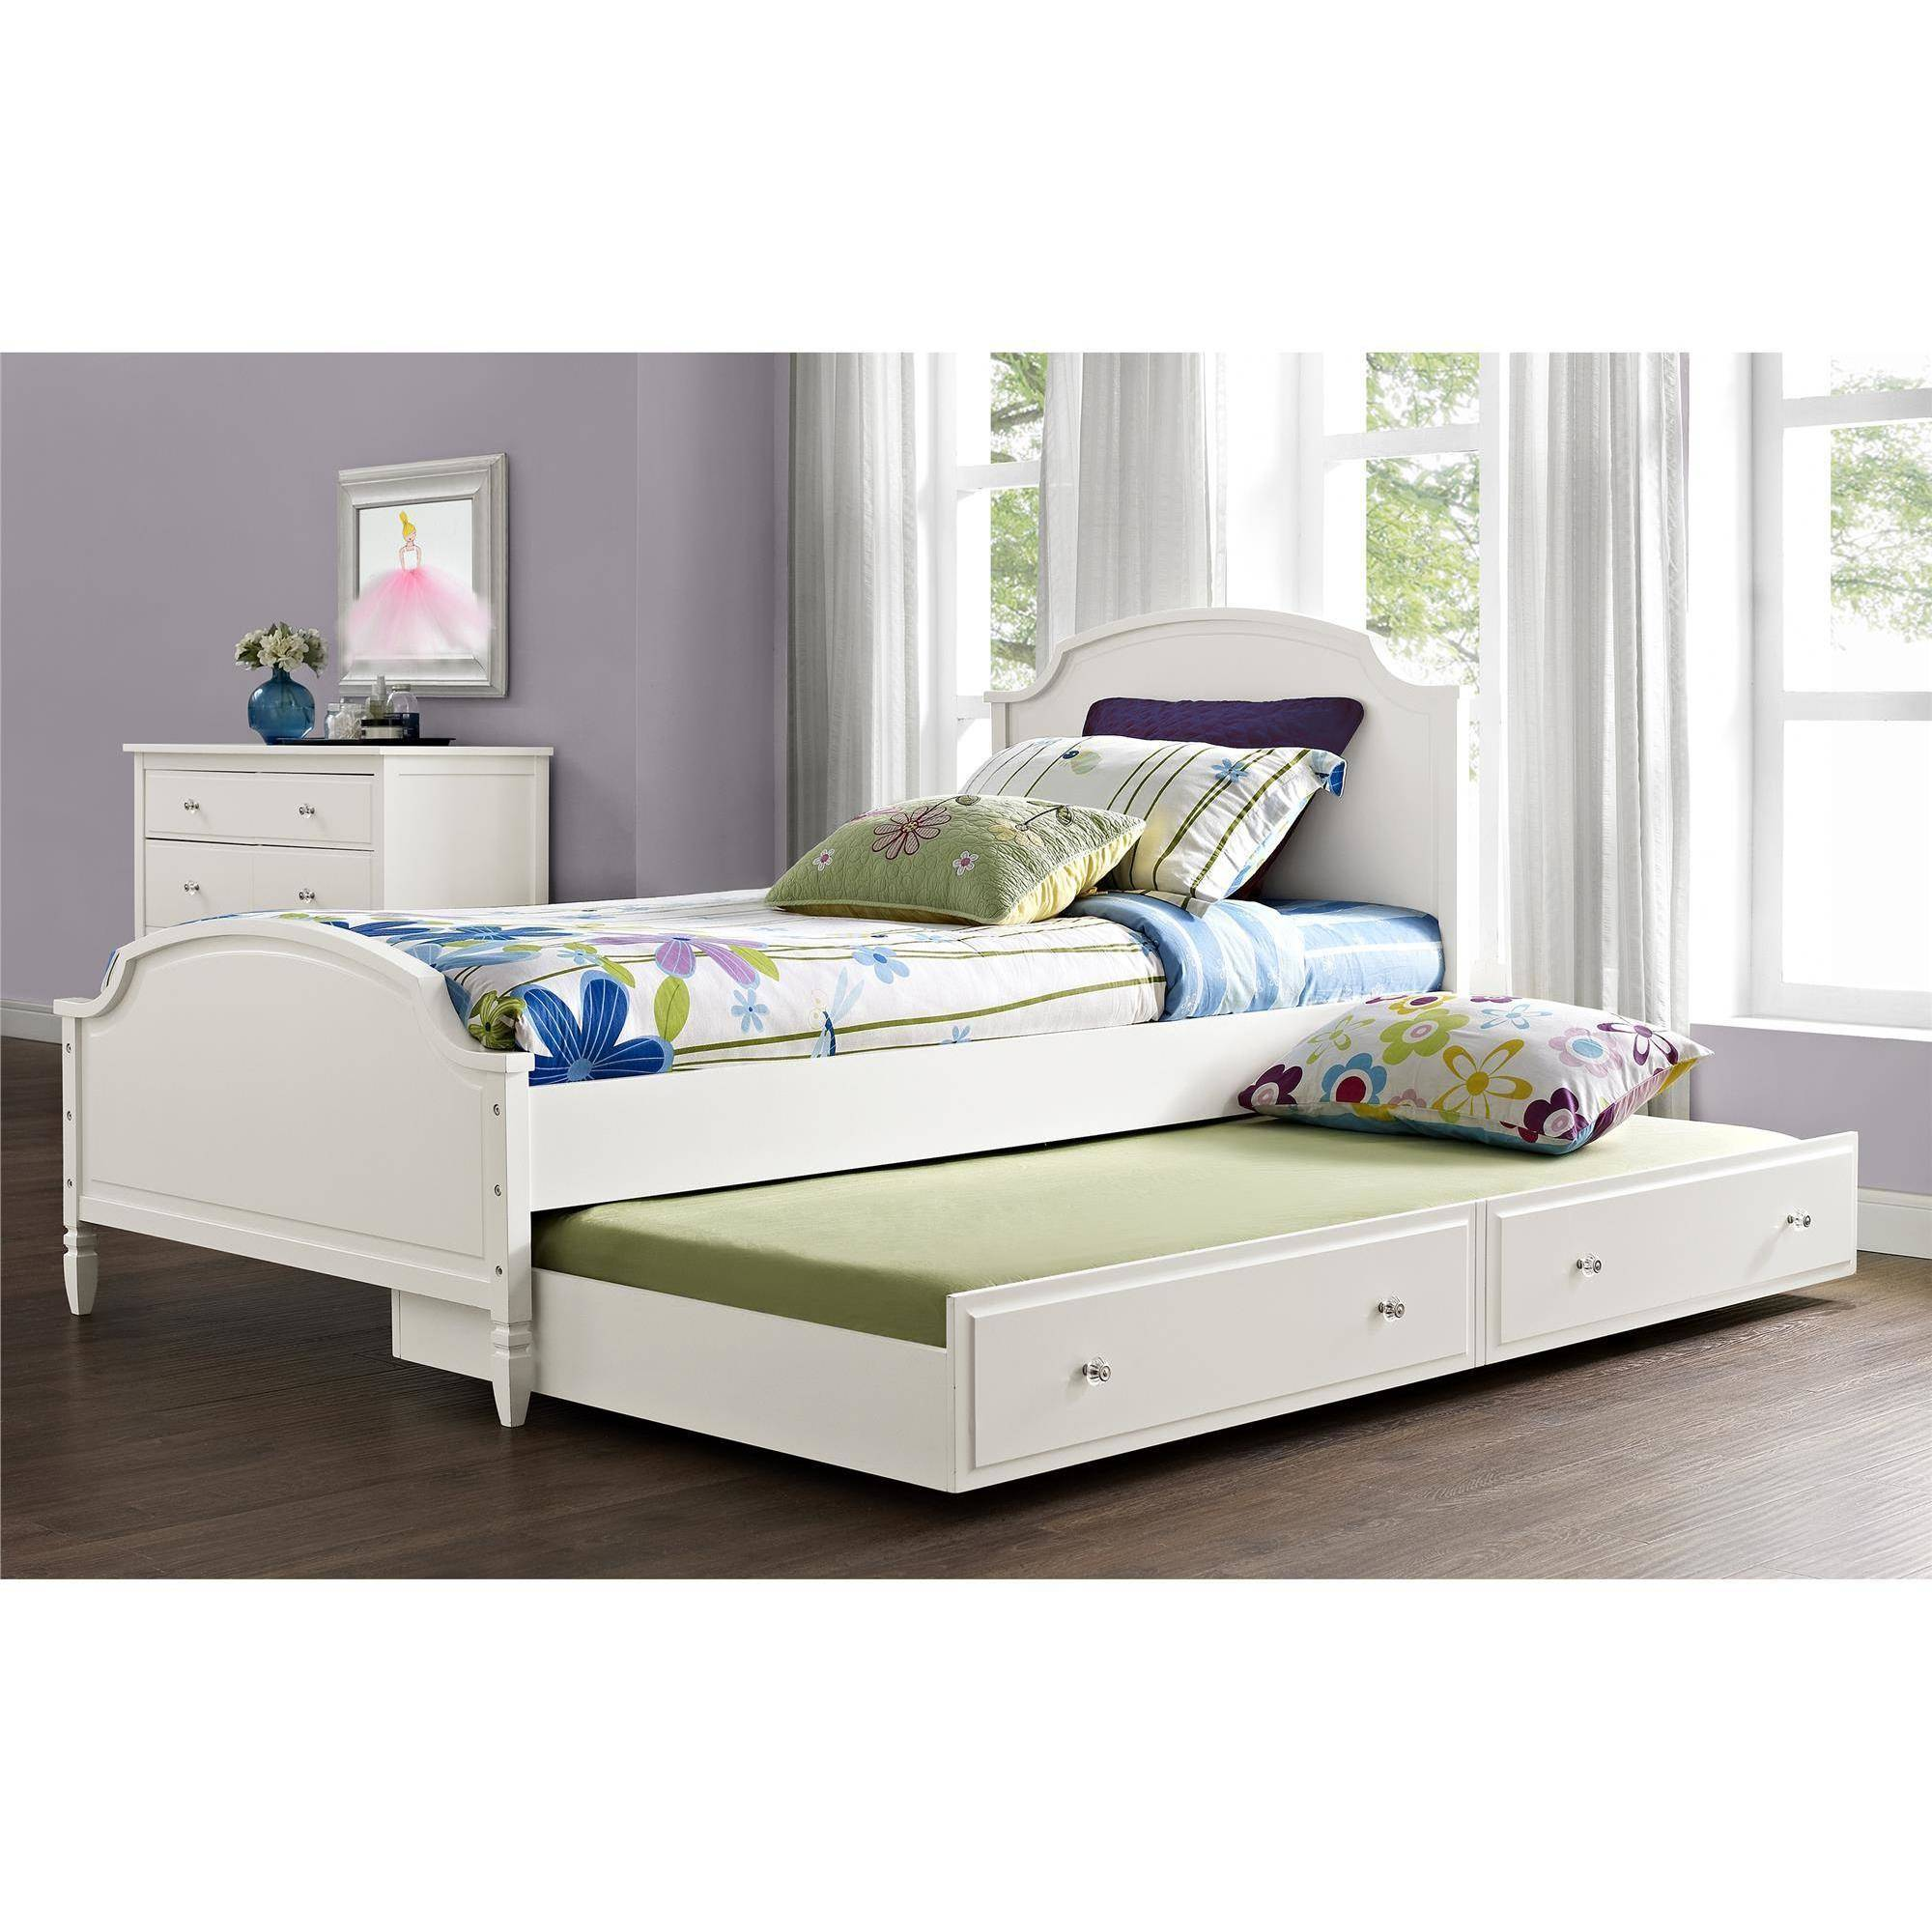 Discount Trundle Beds Better Homes And Gardens Lillian Trundle Bed Only White